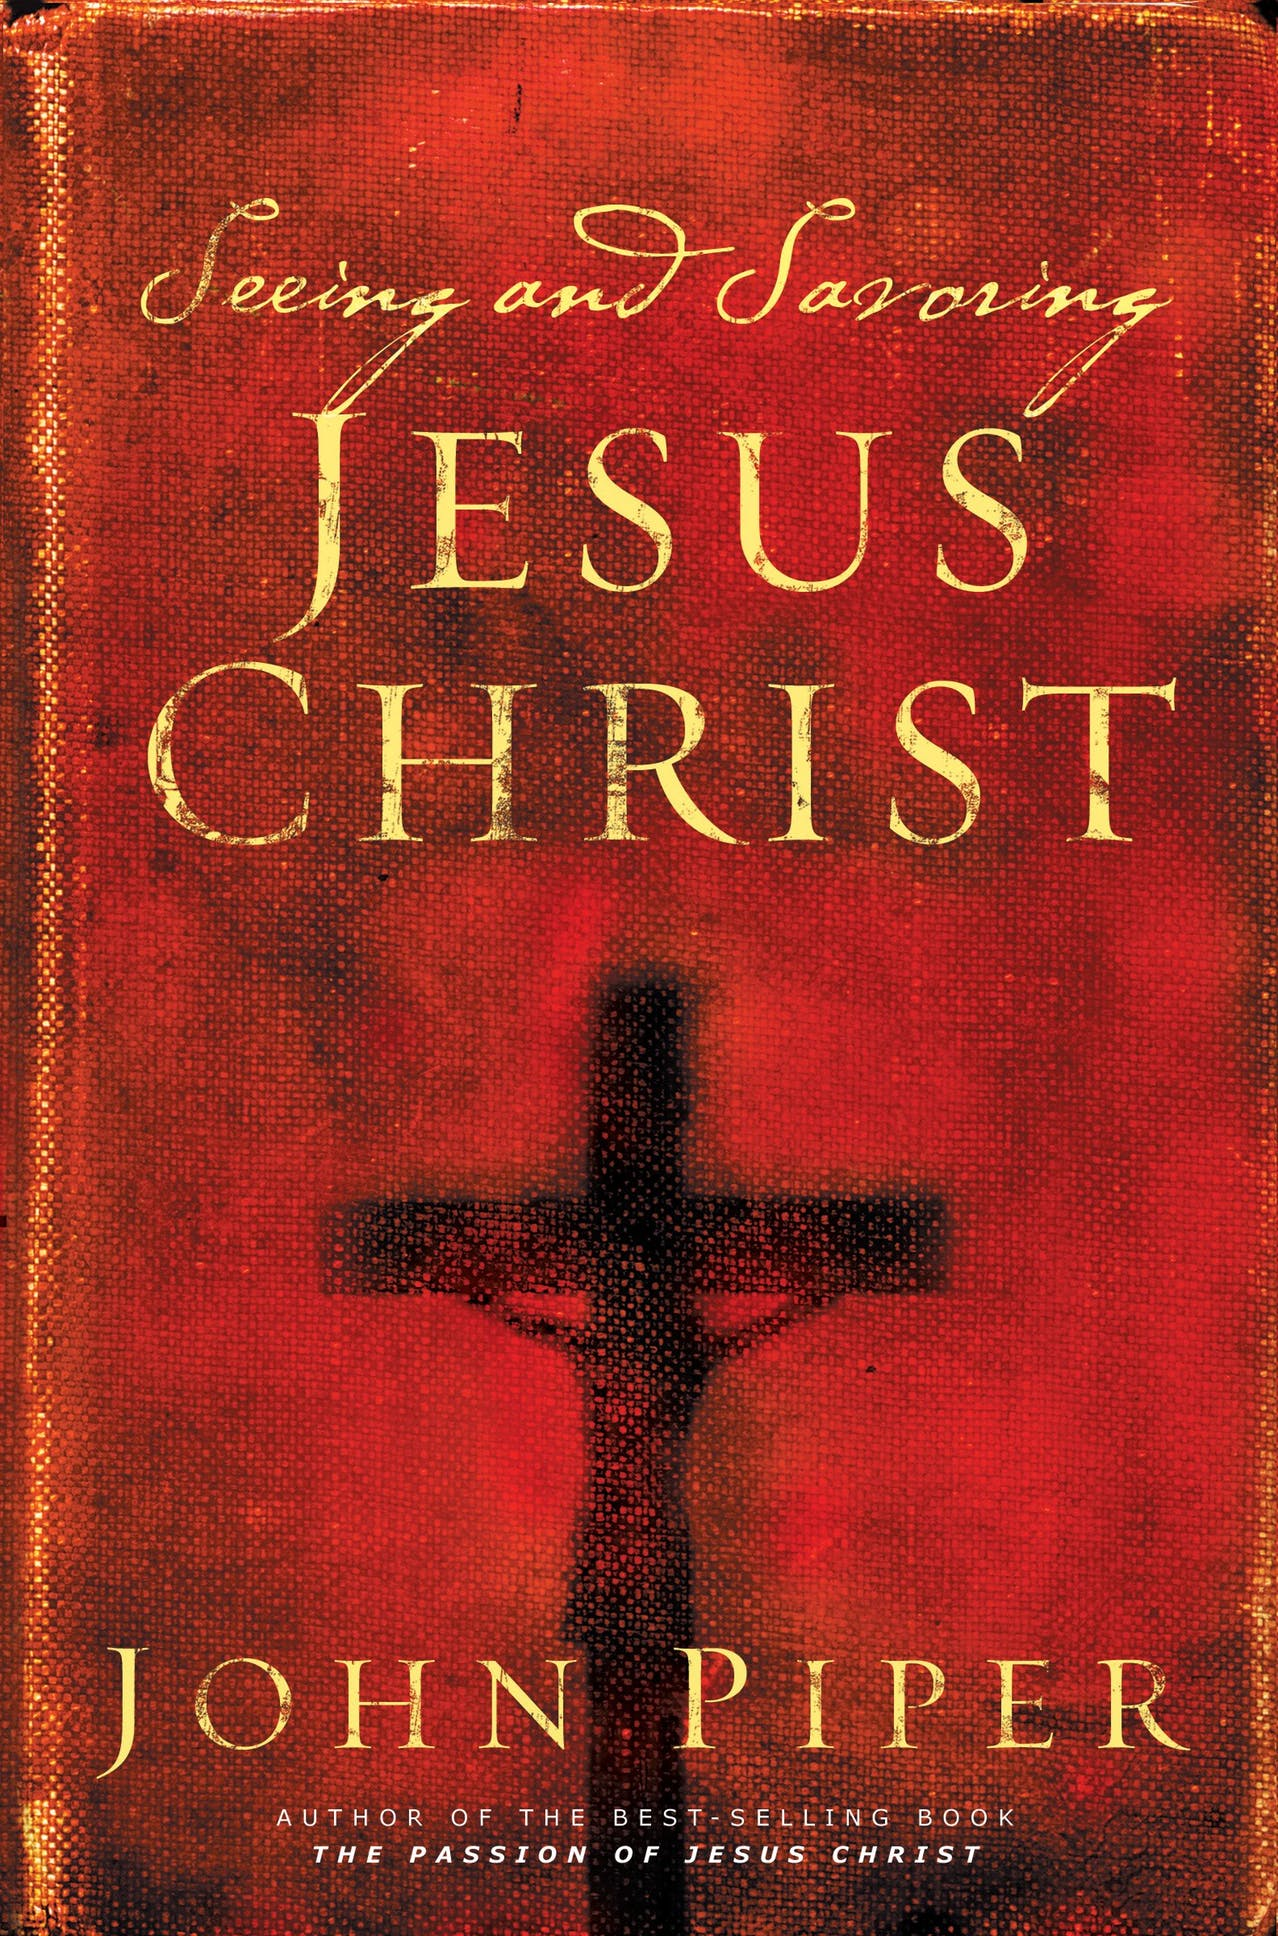 Book of the Month for March: Seeing and Savoring Jesus Christ